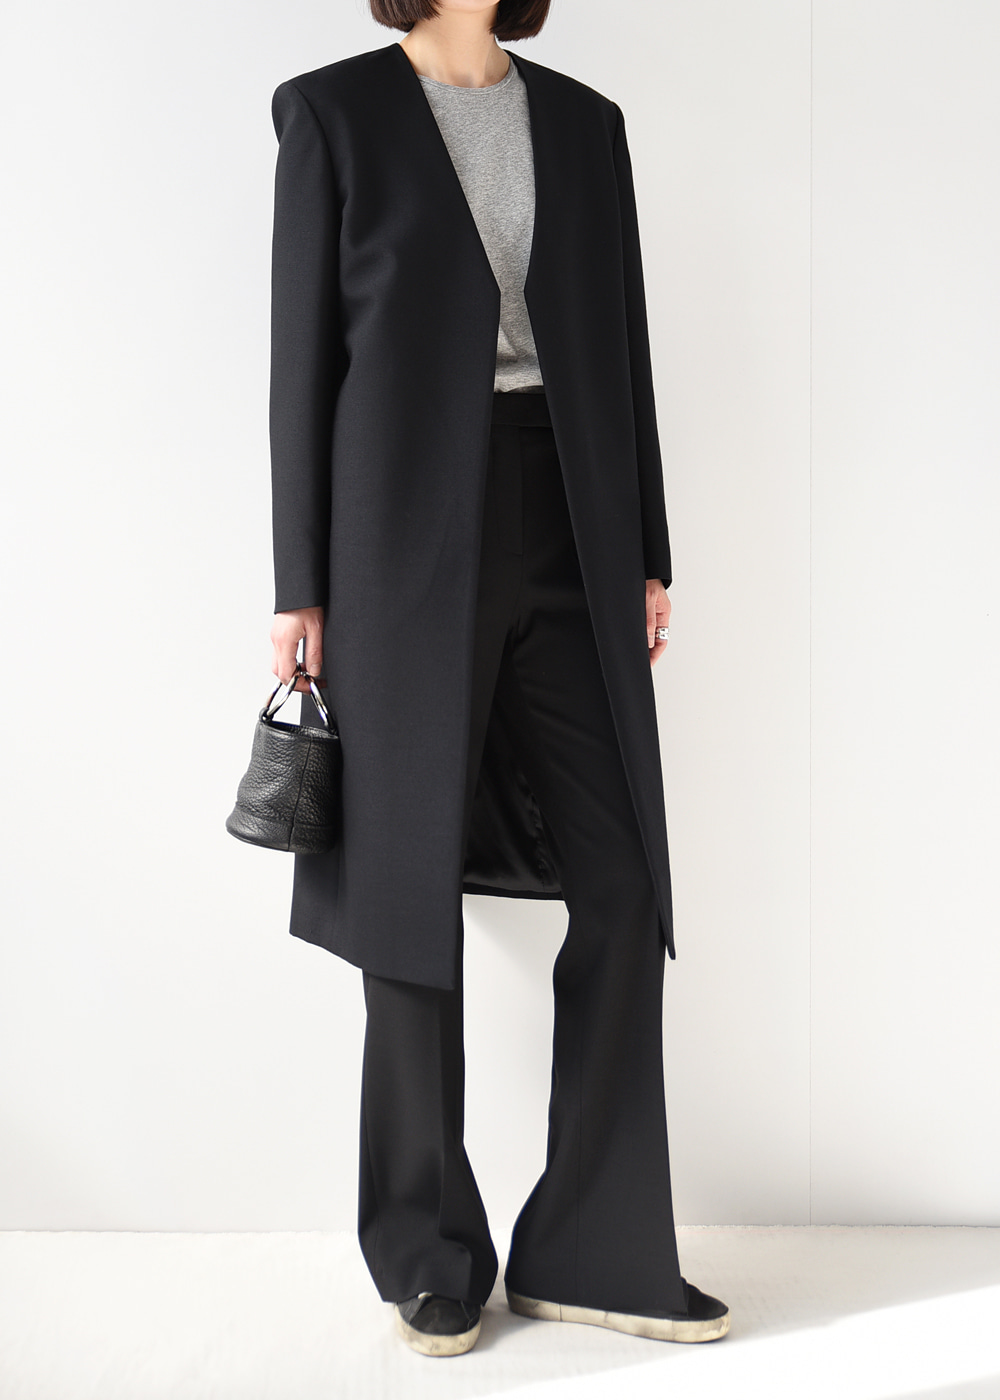 The Wool Silk Coat